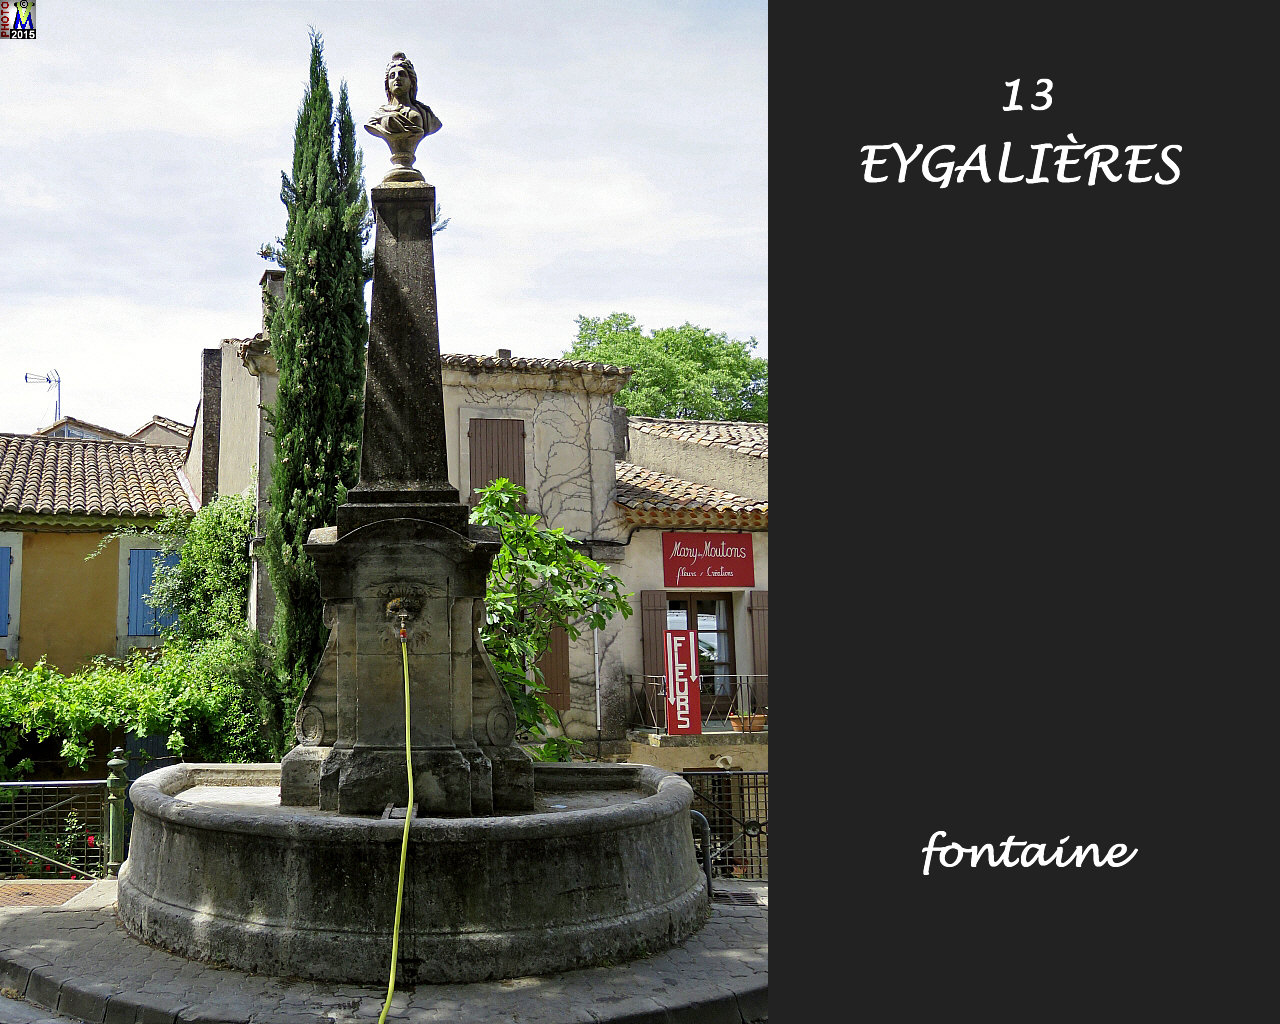 13EYGALIERES_fontaine_100.jpg